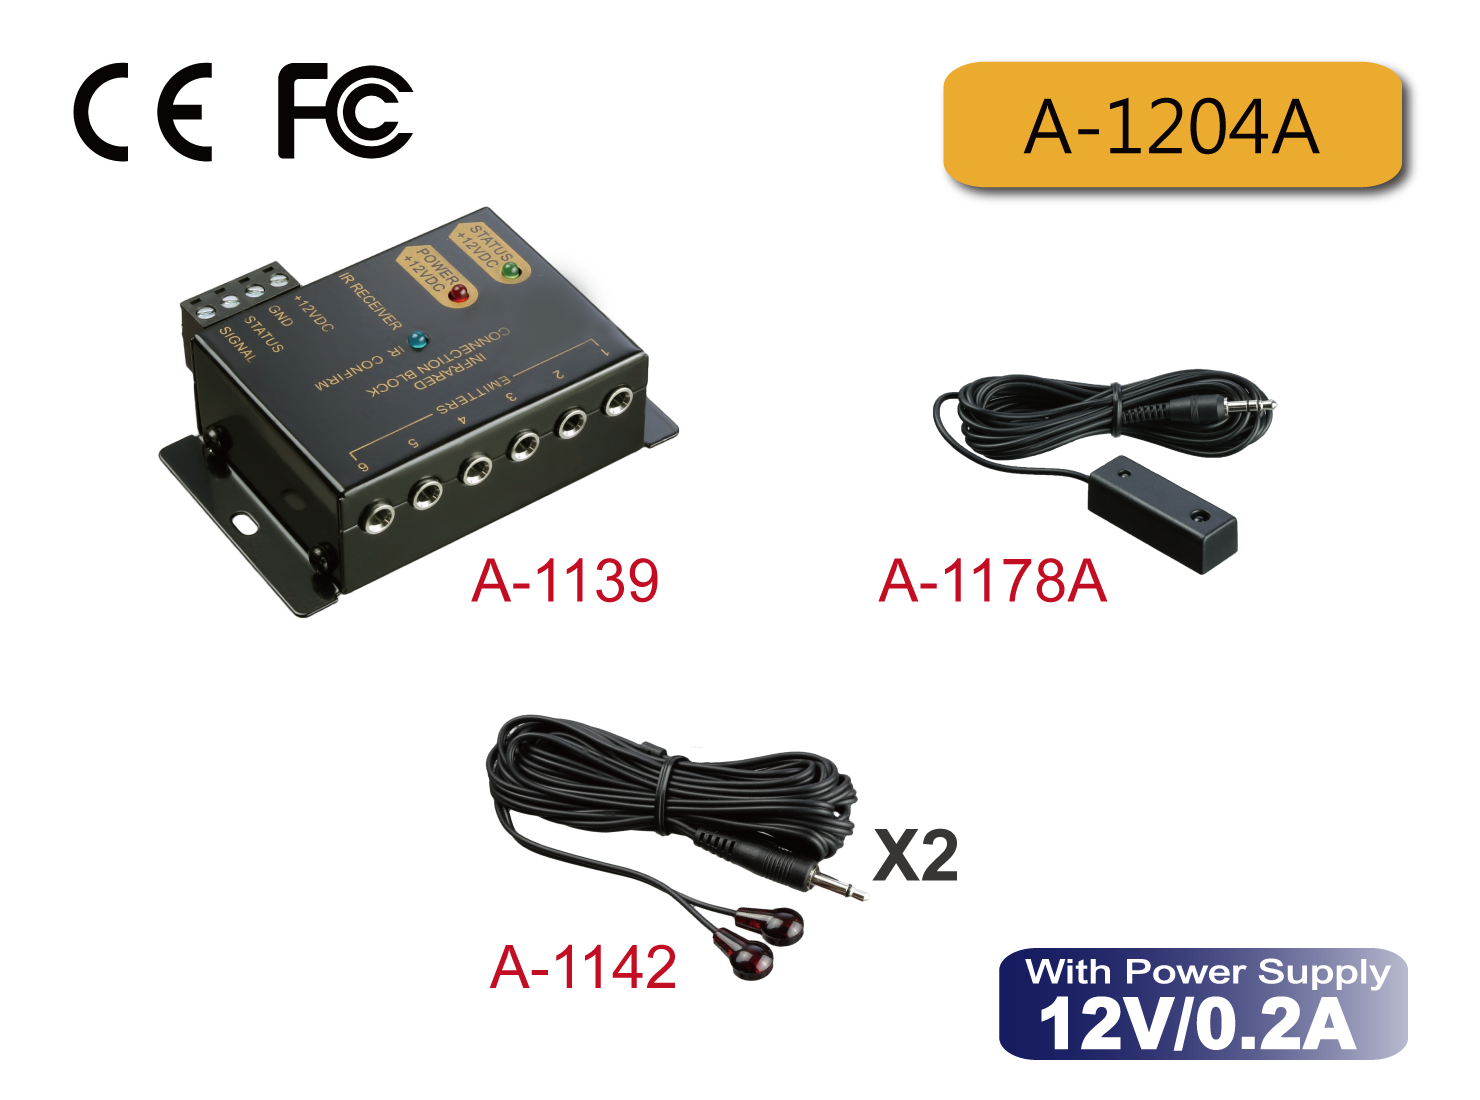 A-1204A : Standard IR Repeater Kit